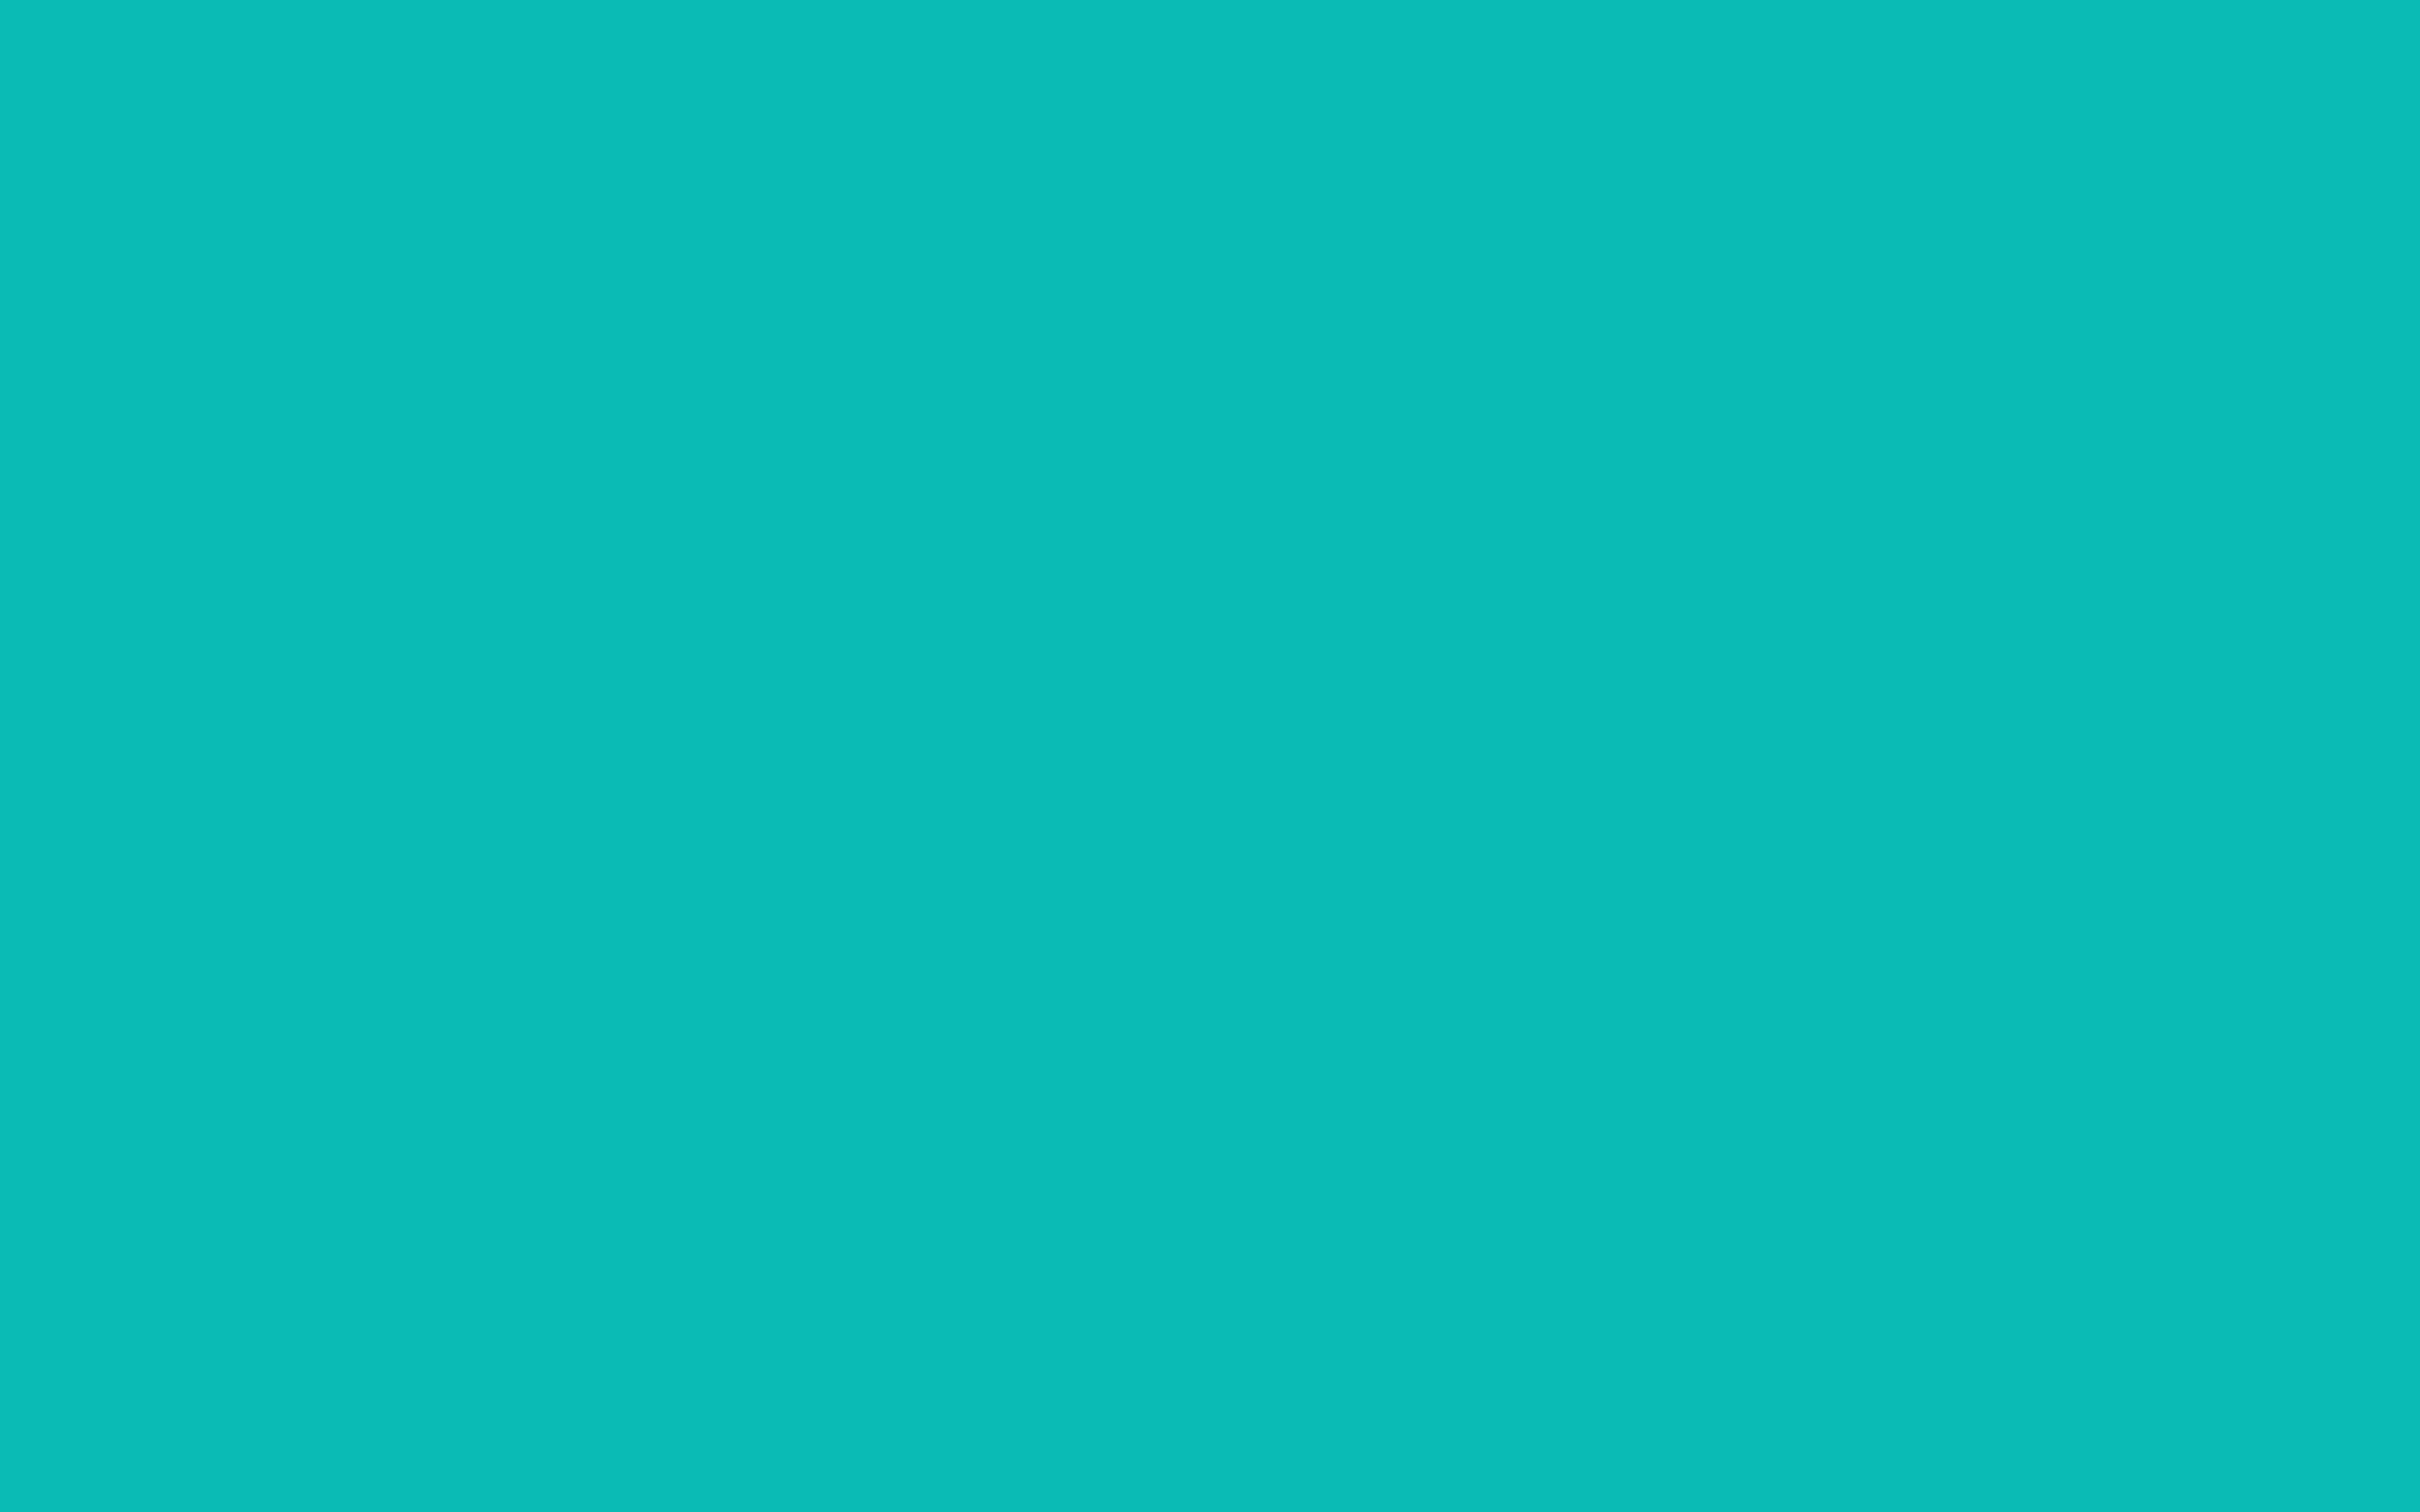 Solid Color Wallpapers Top Free Solid Color Backgrounds